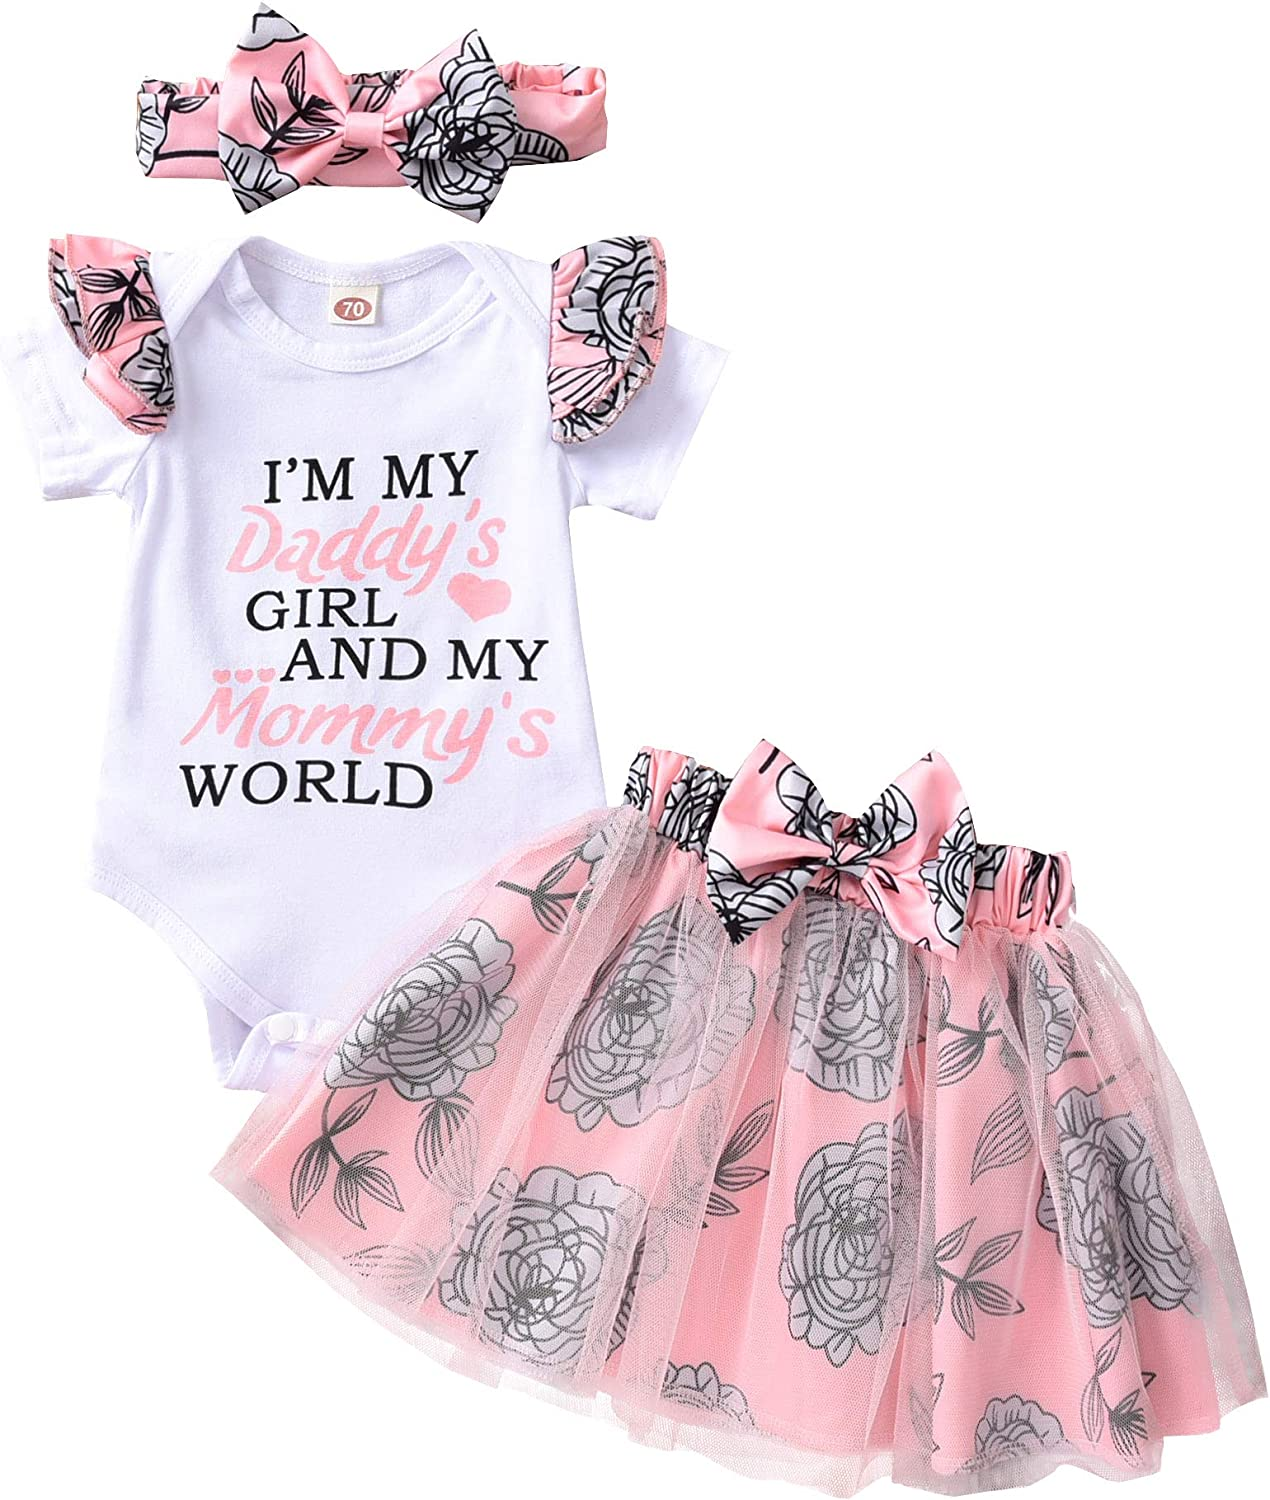 Infant Baby Girls Romper Outfits Ruffle Short Sleeve Bodysuit Onesies Floral Tulle Skirts Summer Clothes Set